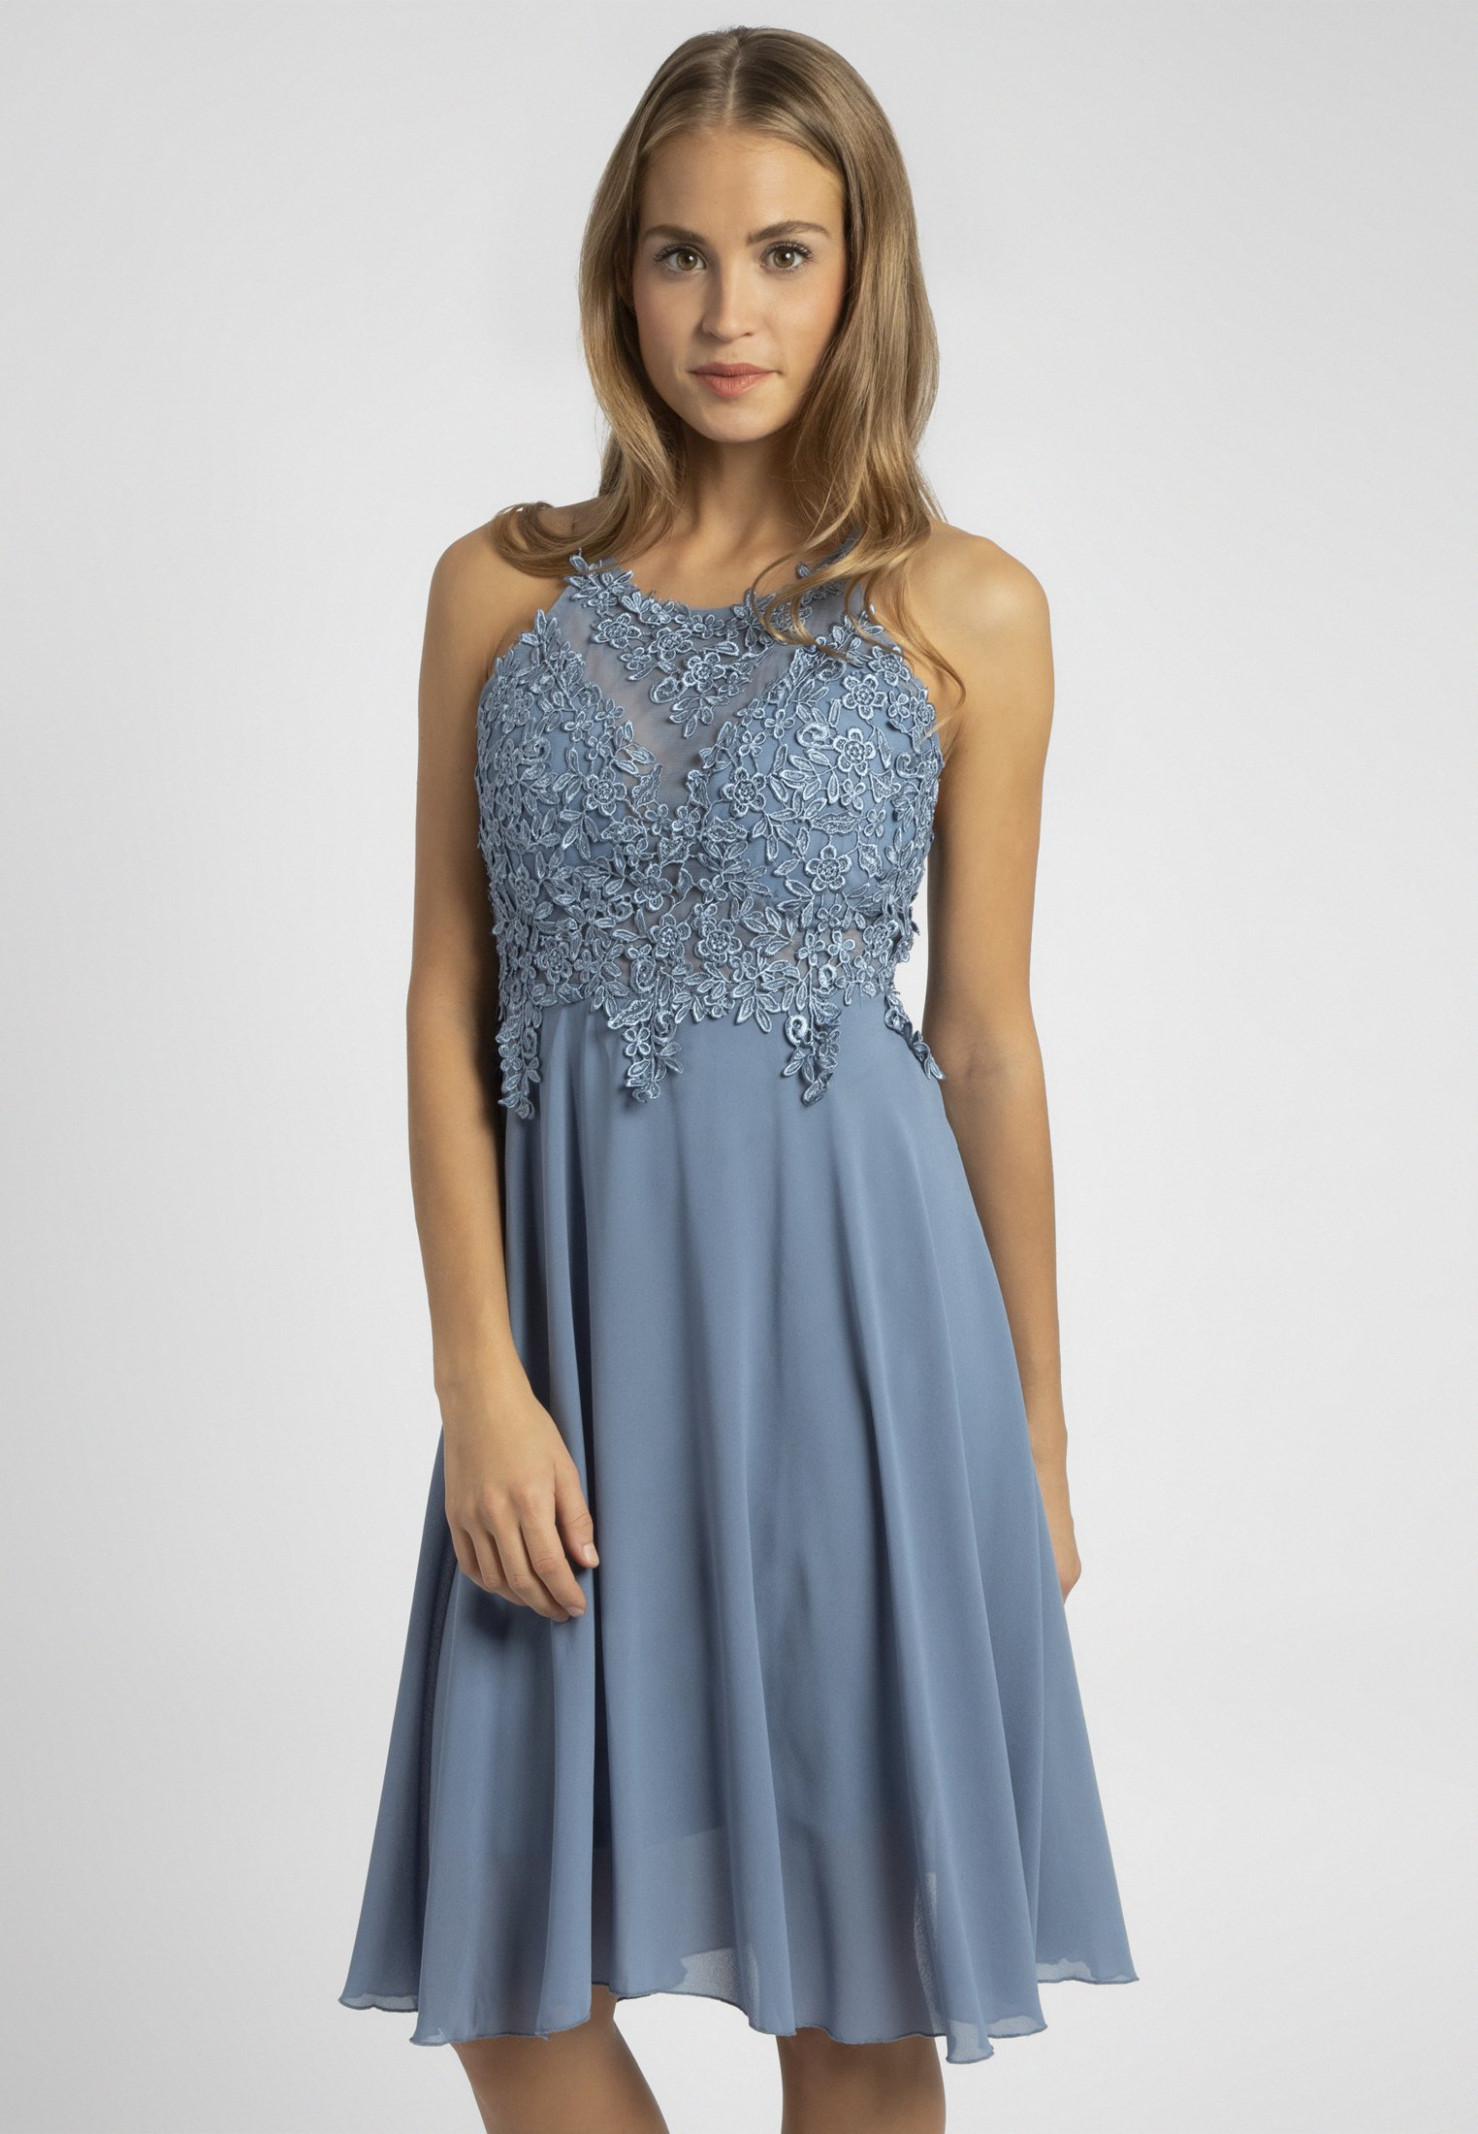 cocktailkleid/festliches kleid light blue cocktailkleid hellblau